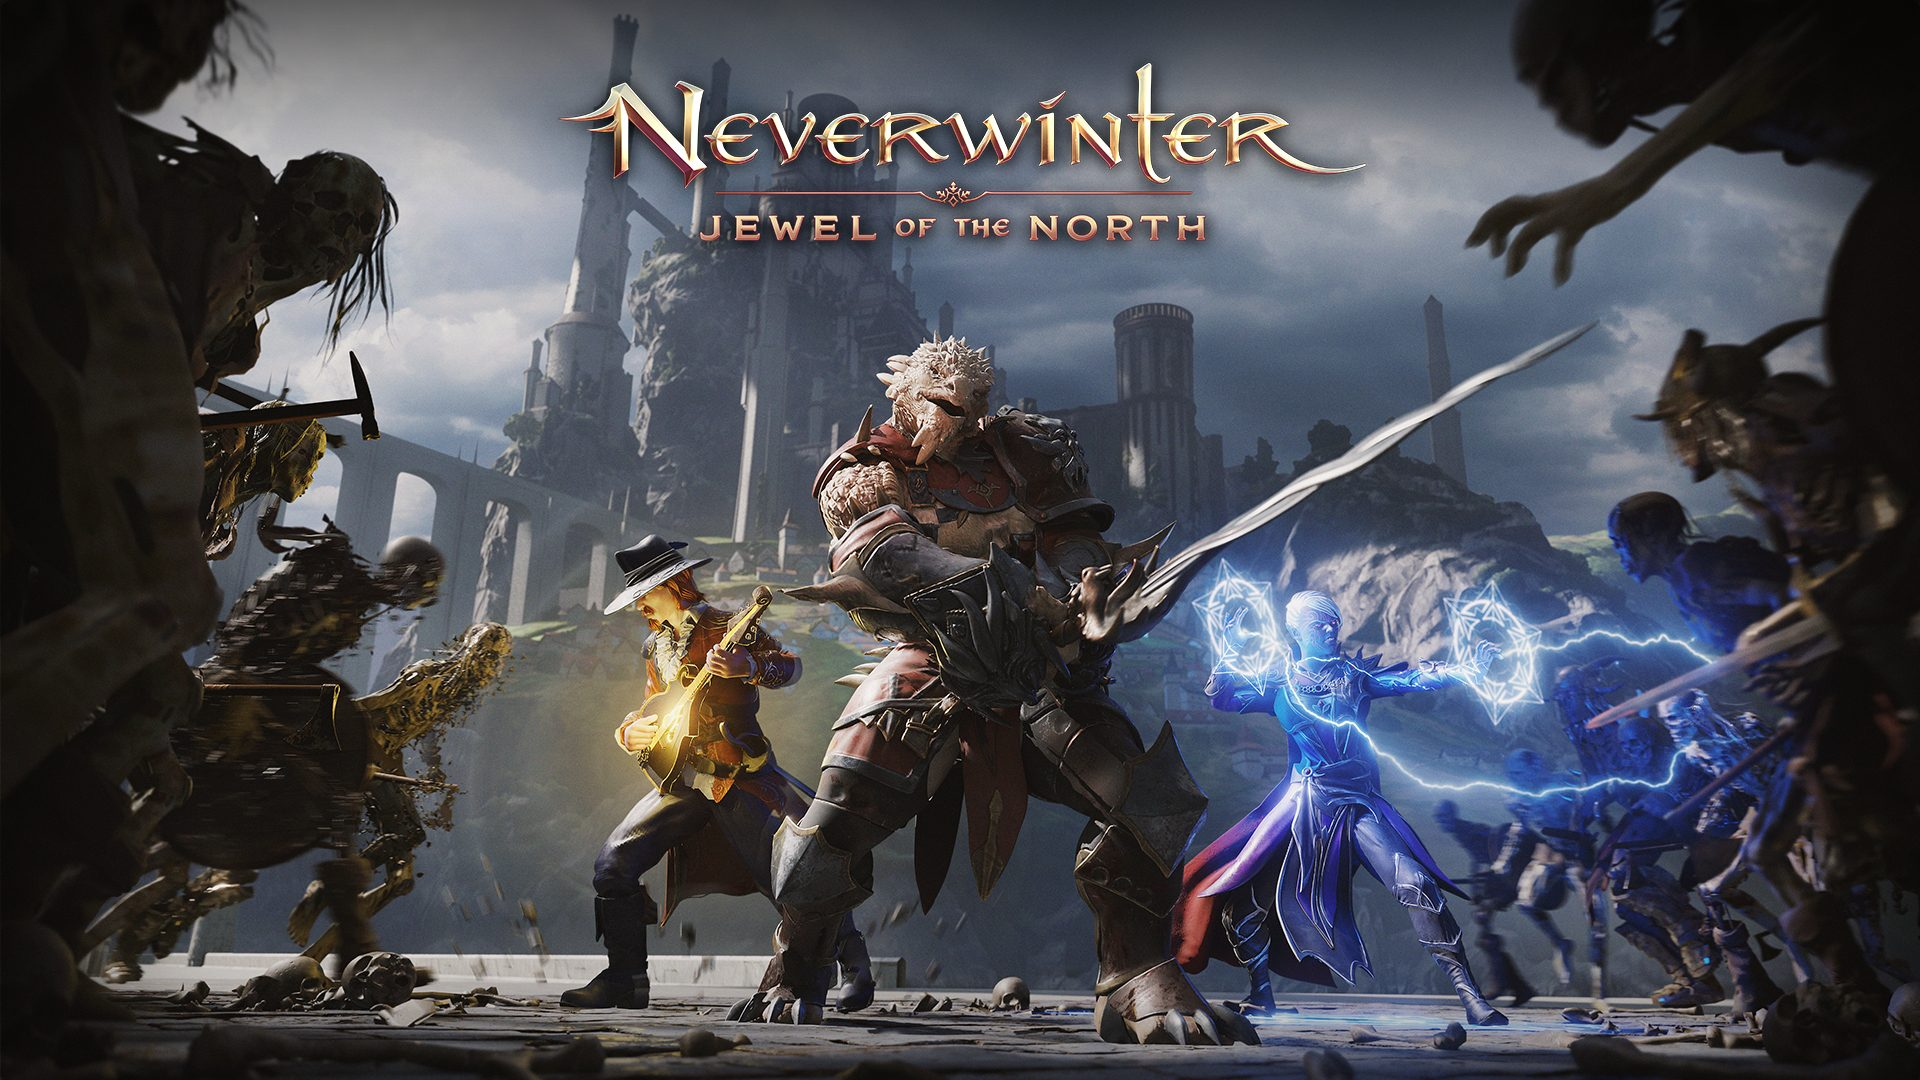 the-entire-world-of-neverwinter-is-switching-with-jewel-of-the-north,-coming-august-24